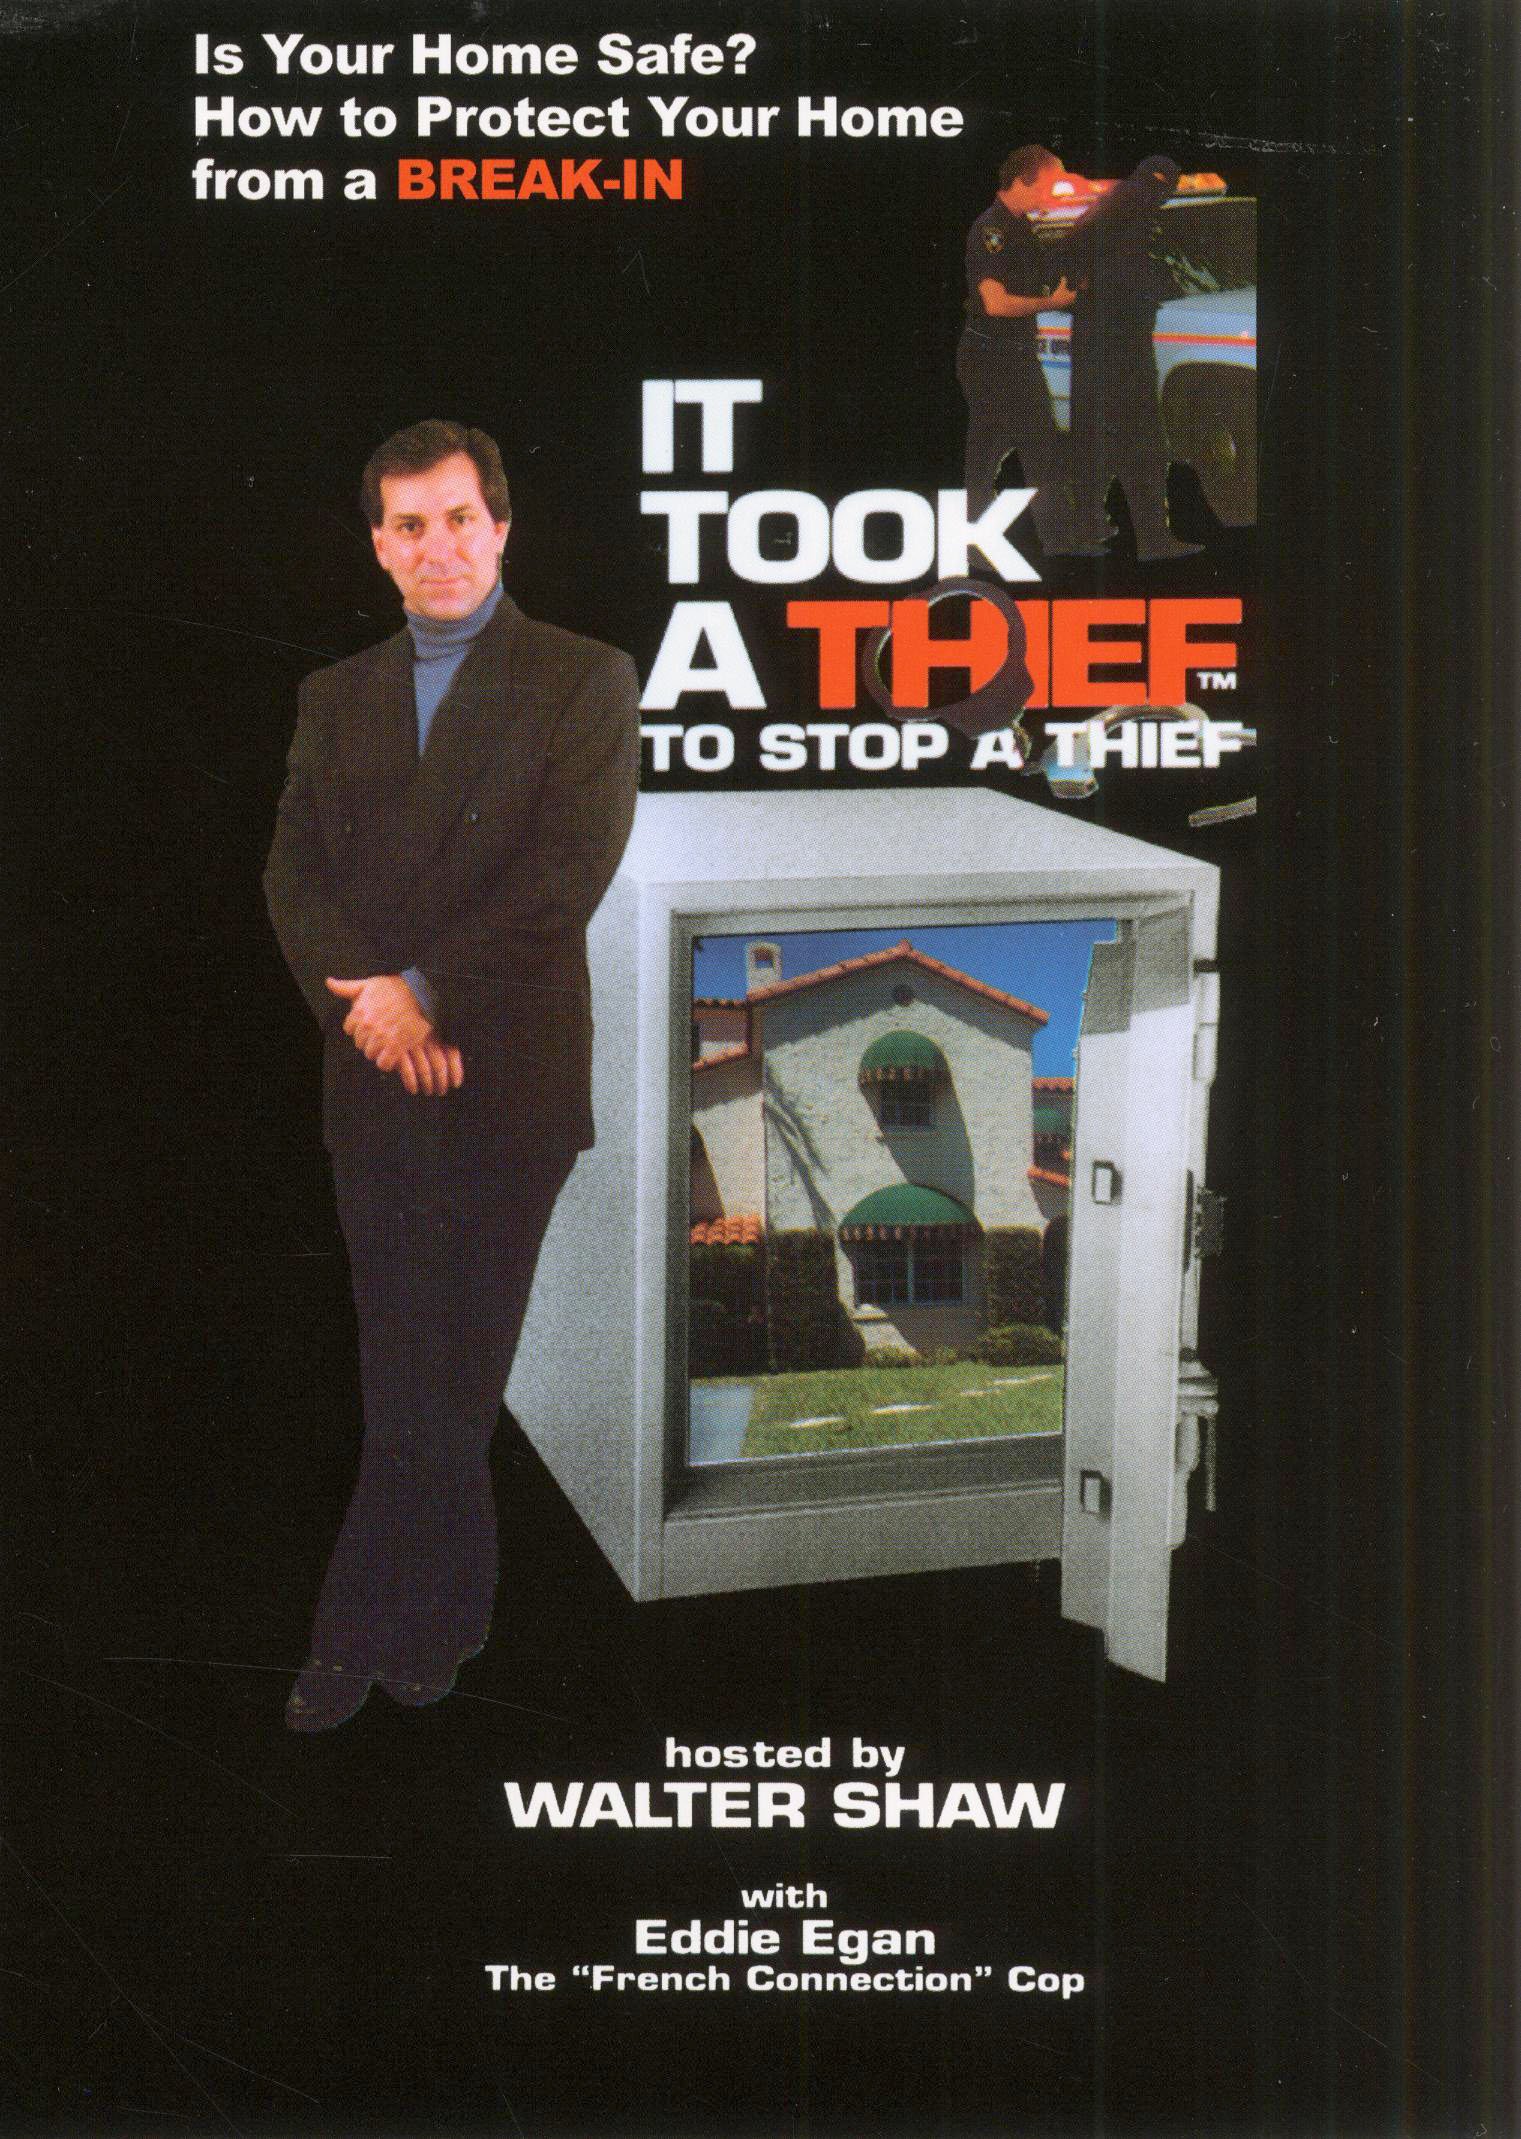 It Took a Thief to Stop a Thief